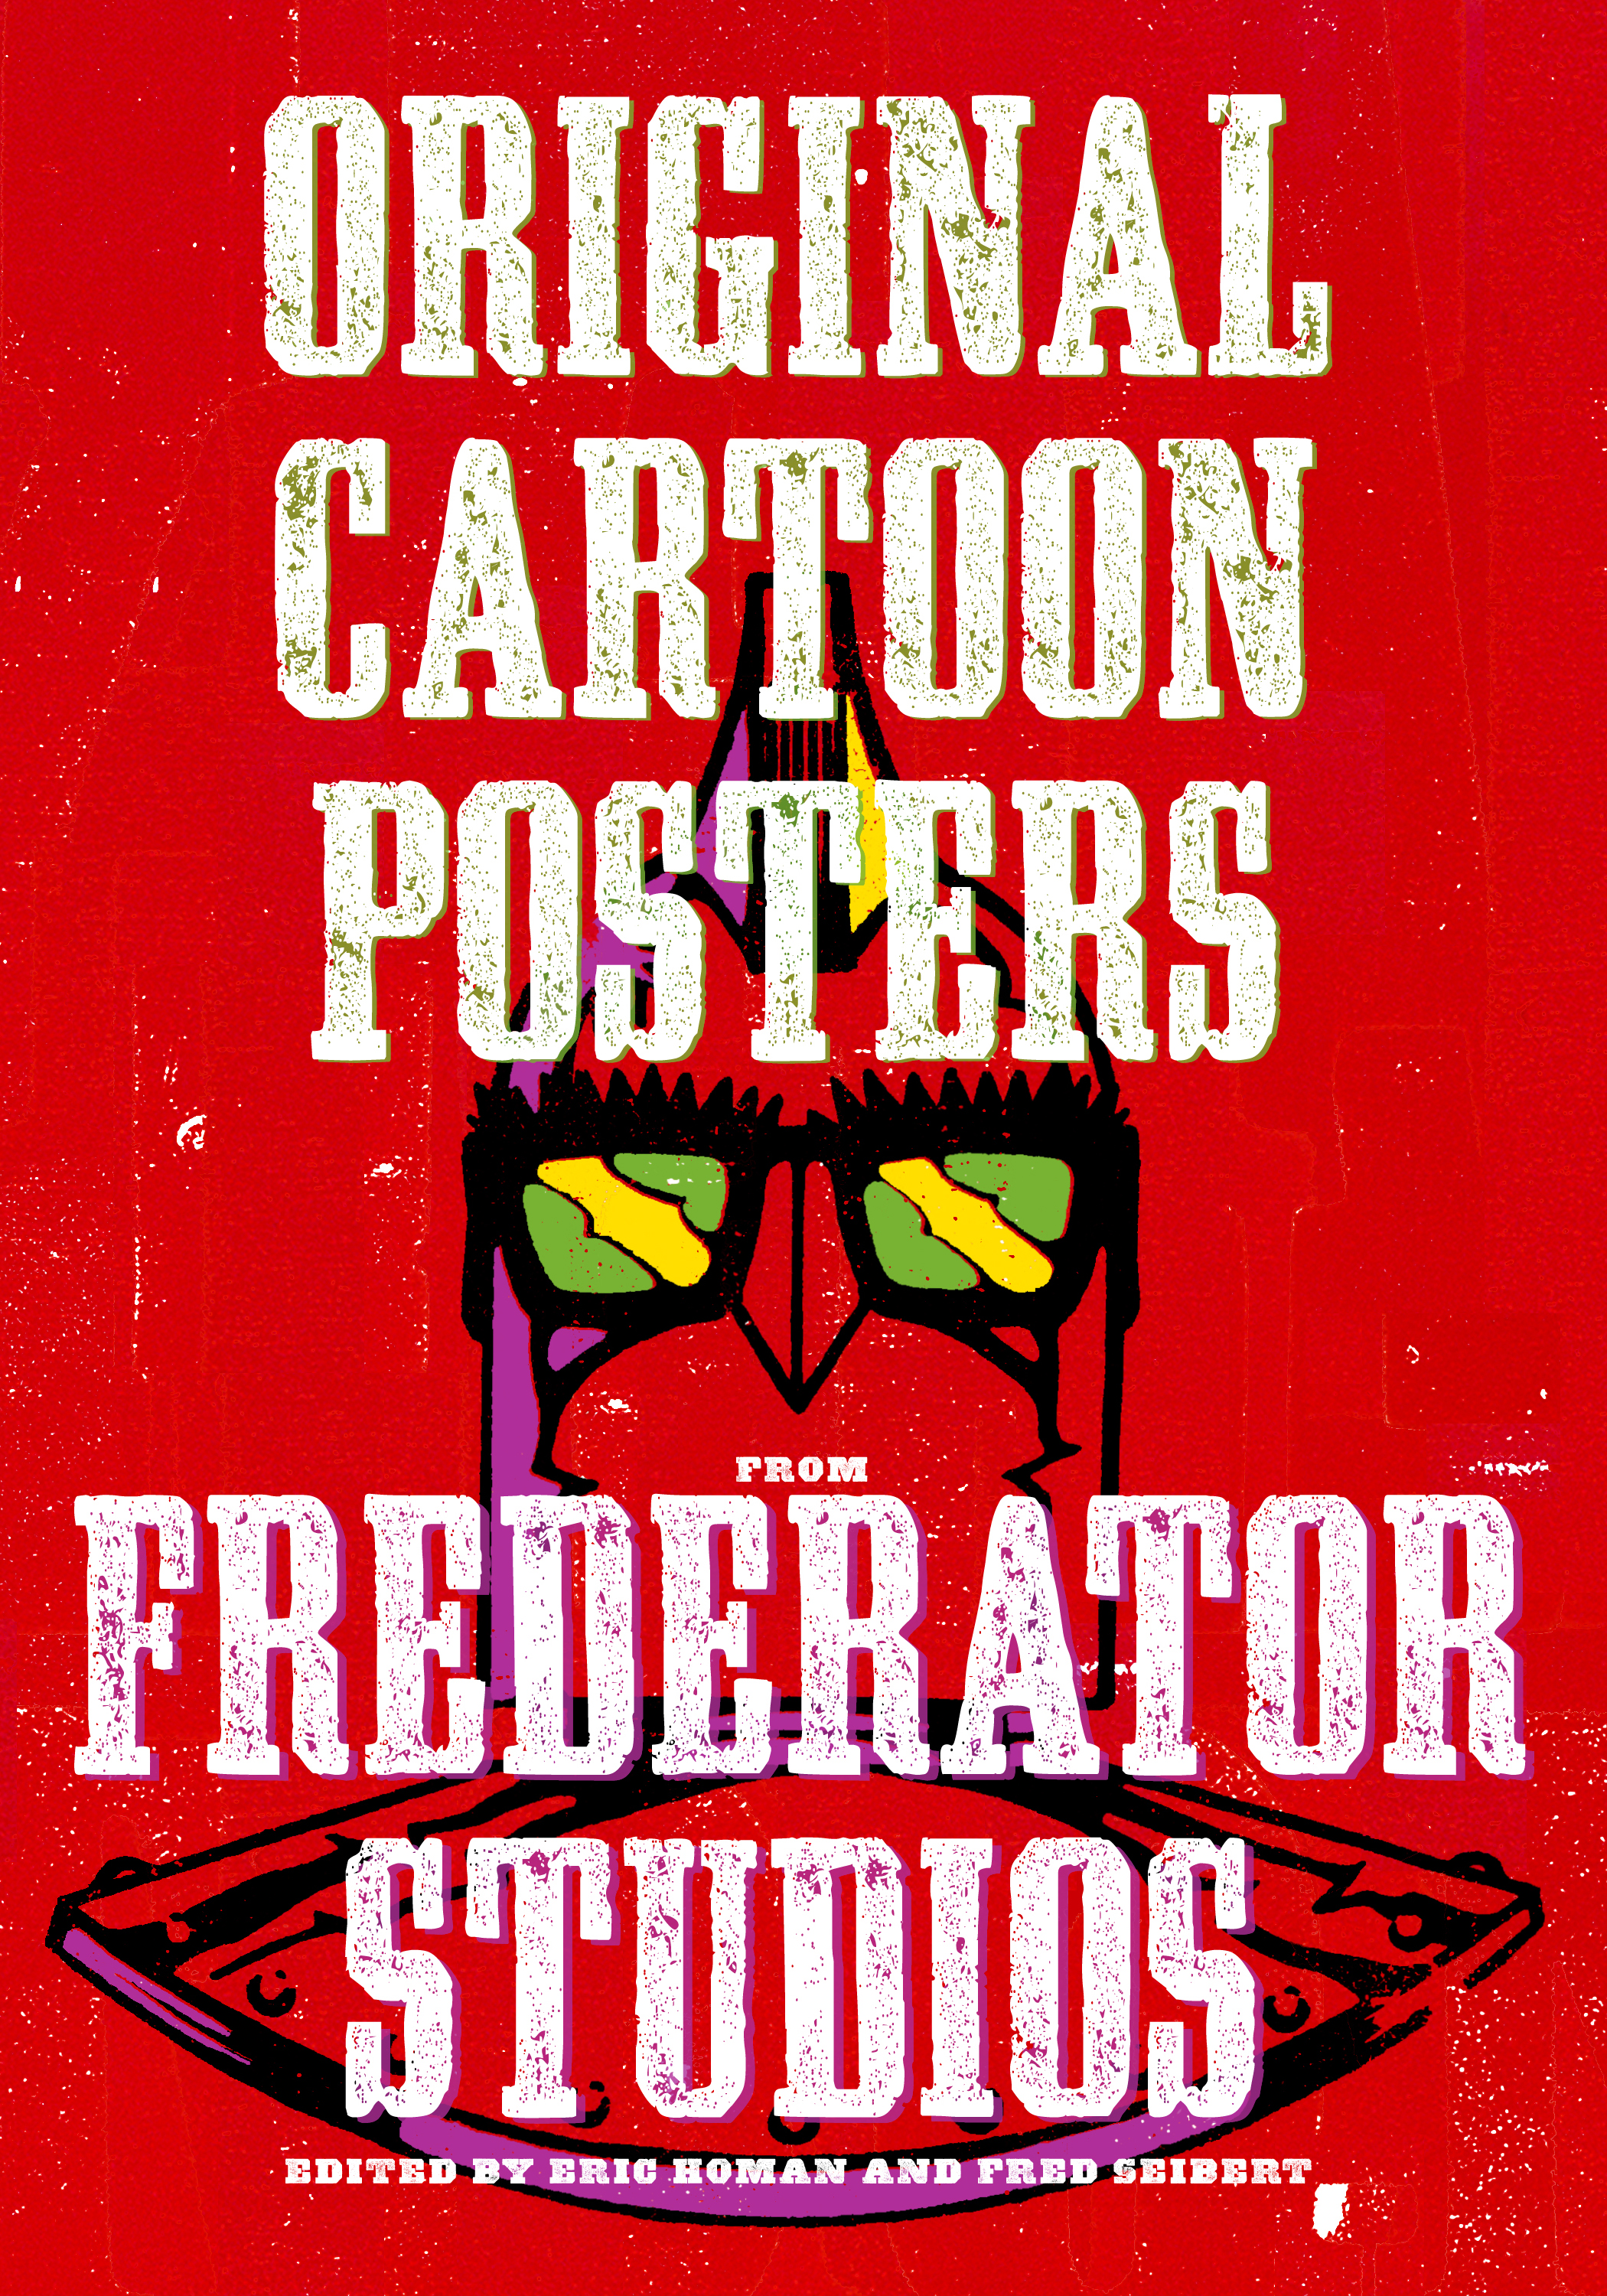 book cover 1 FREDERATOR POSTERS